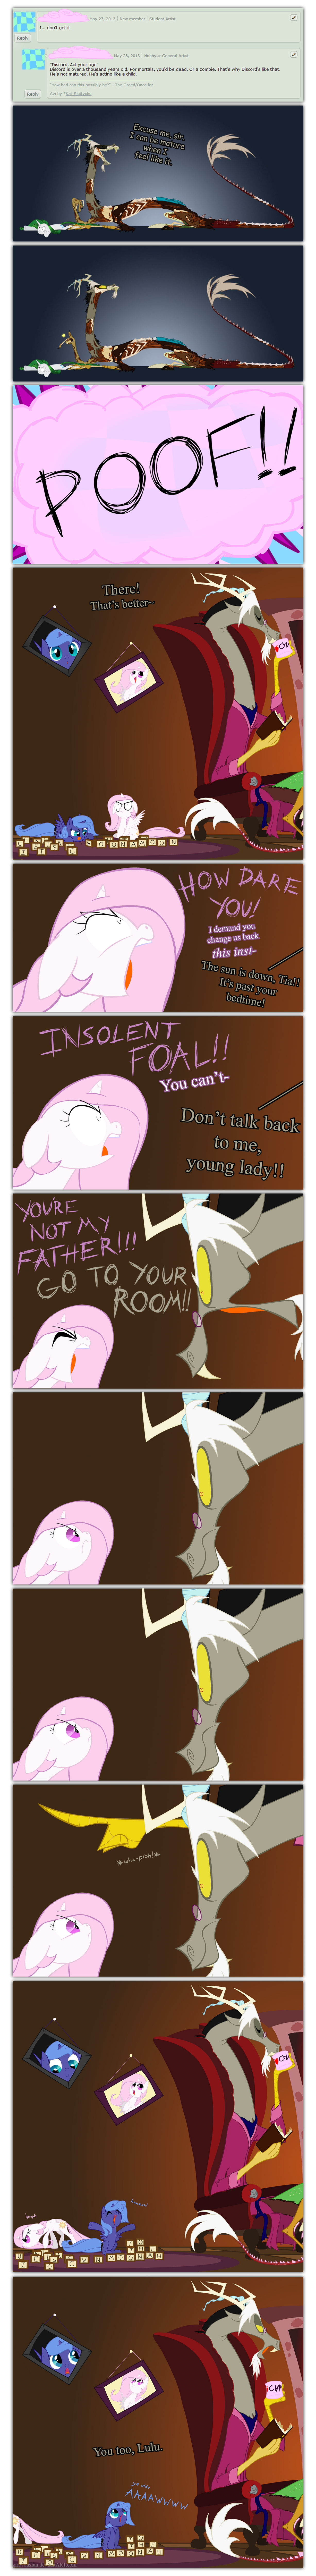 No Maturity Here Either by grievousfan